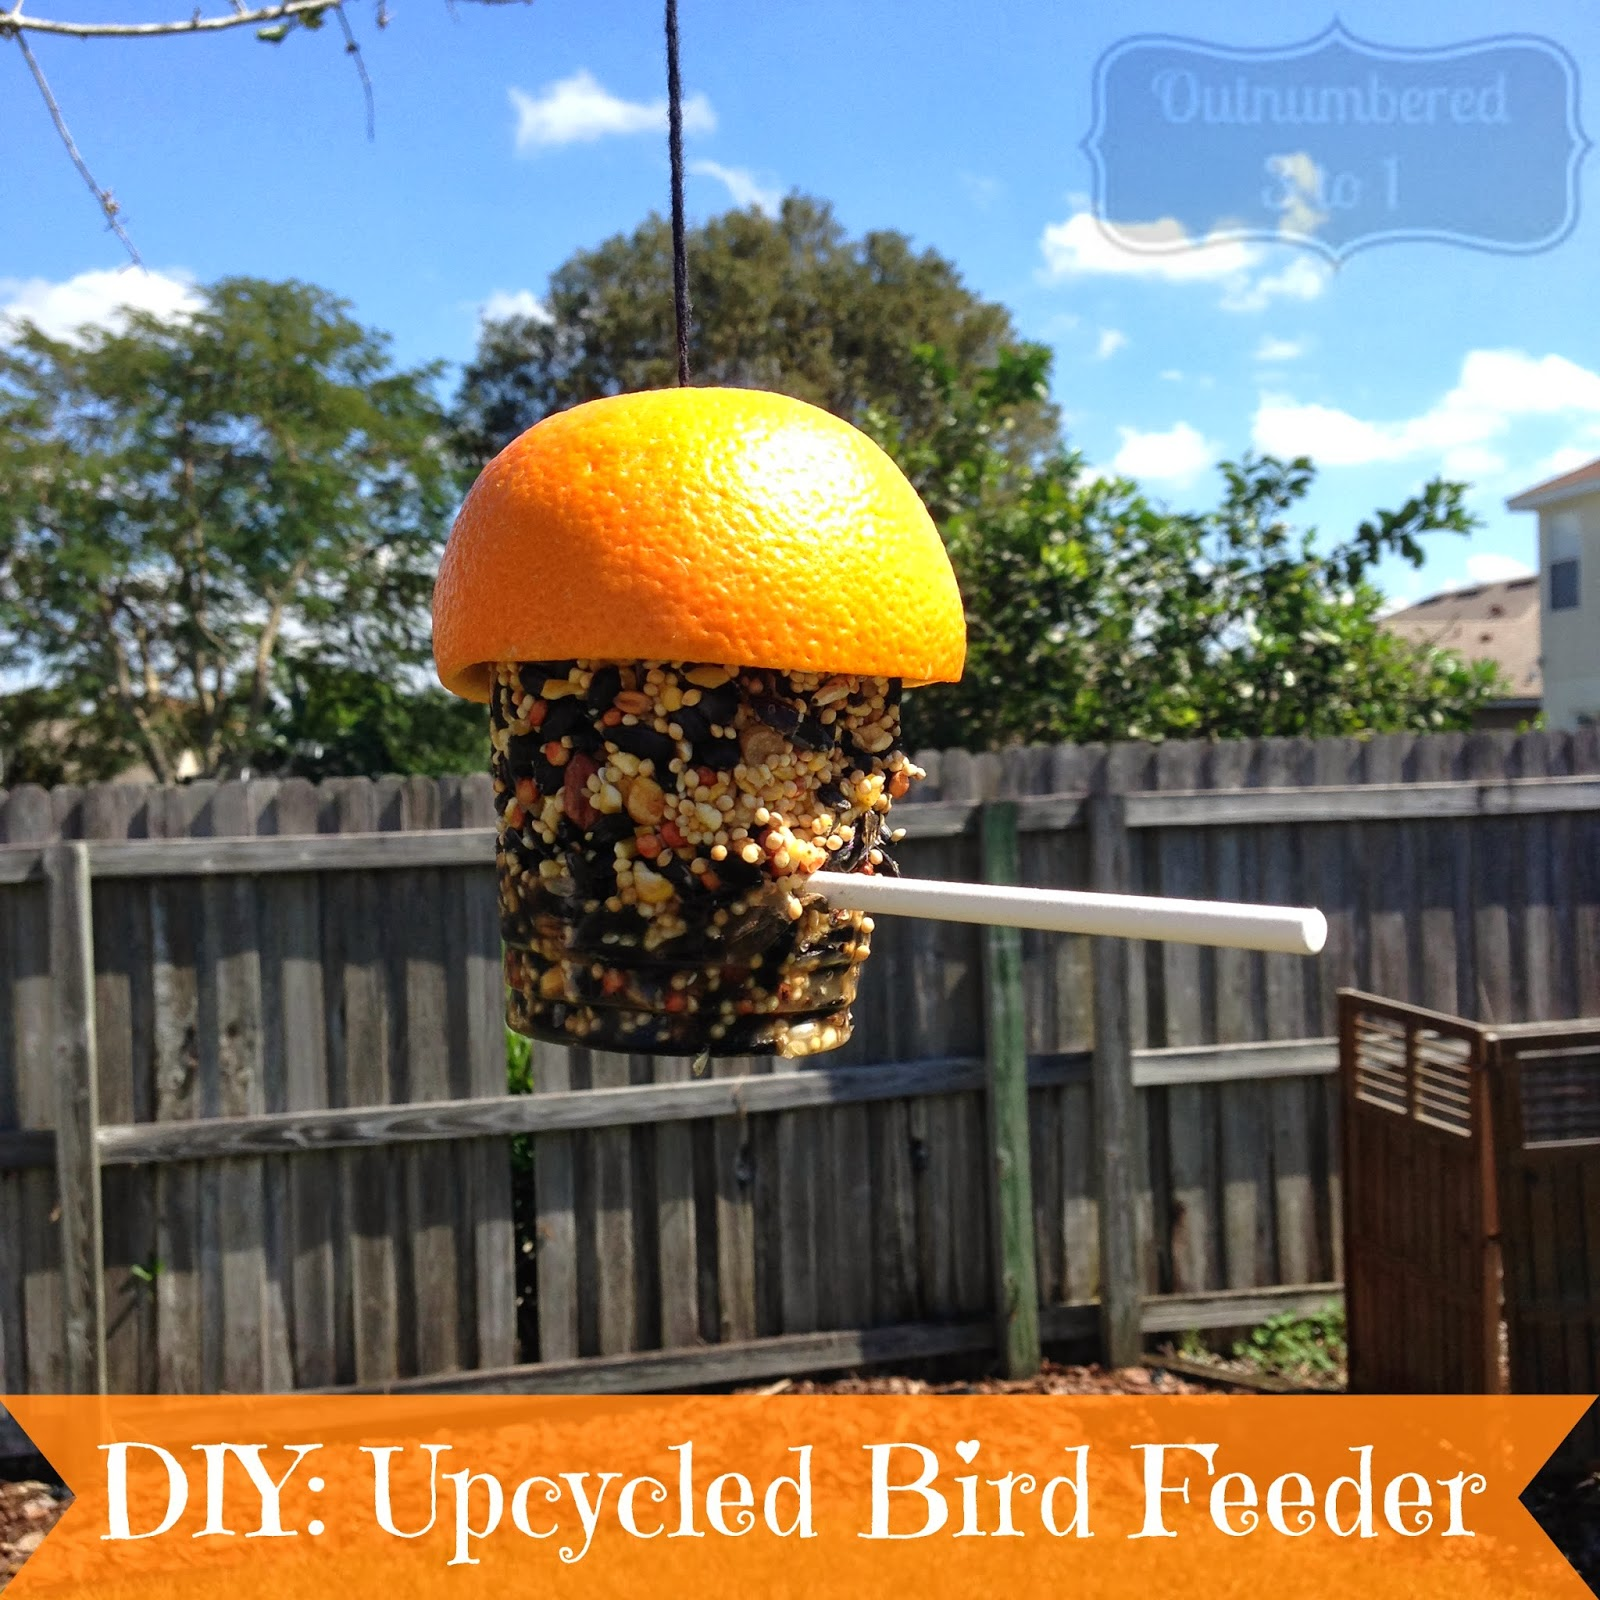 Diy upcycled bird feeder outnumbered 3 to 1 for Upcycled bird feeder